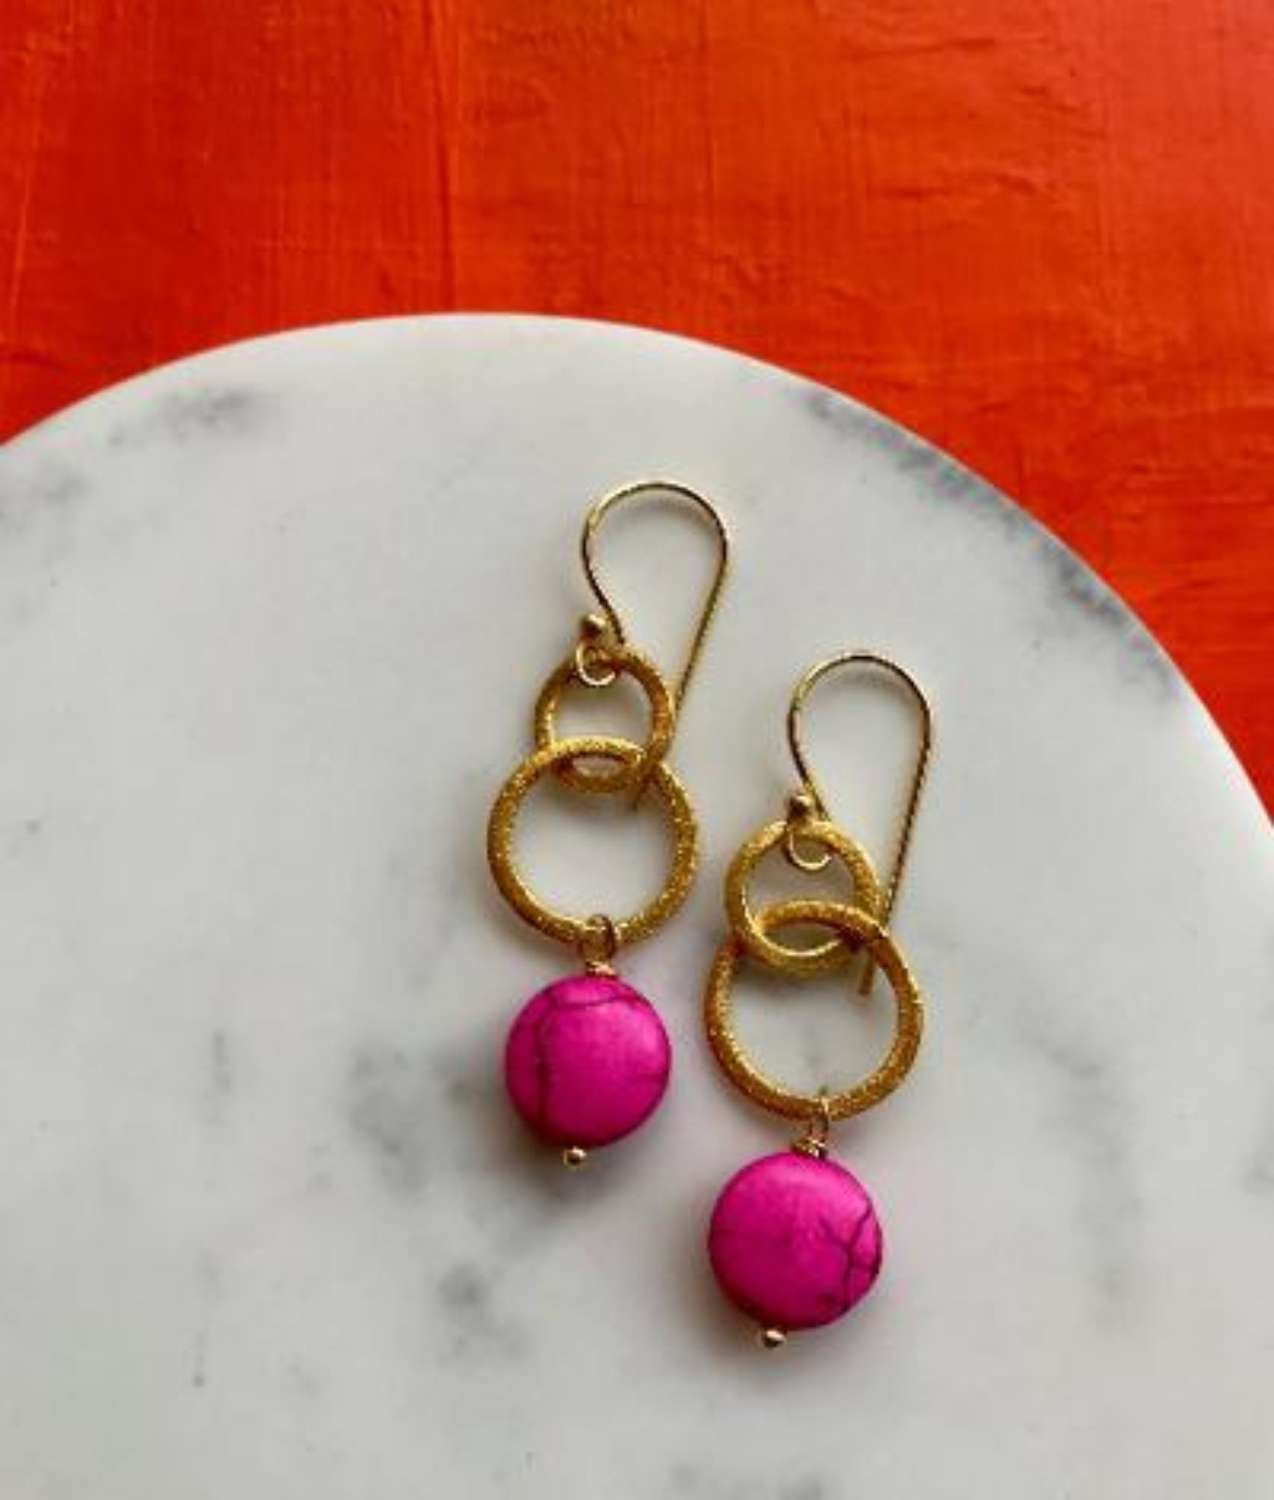 Gina earrings - candy pink